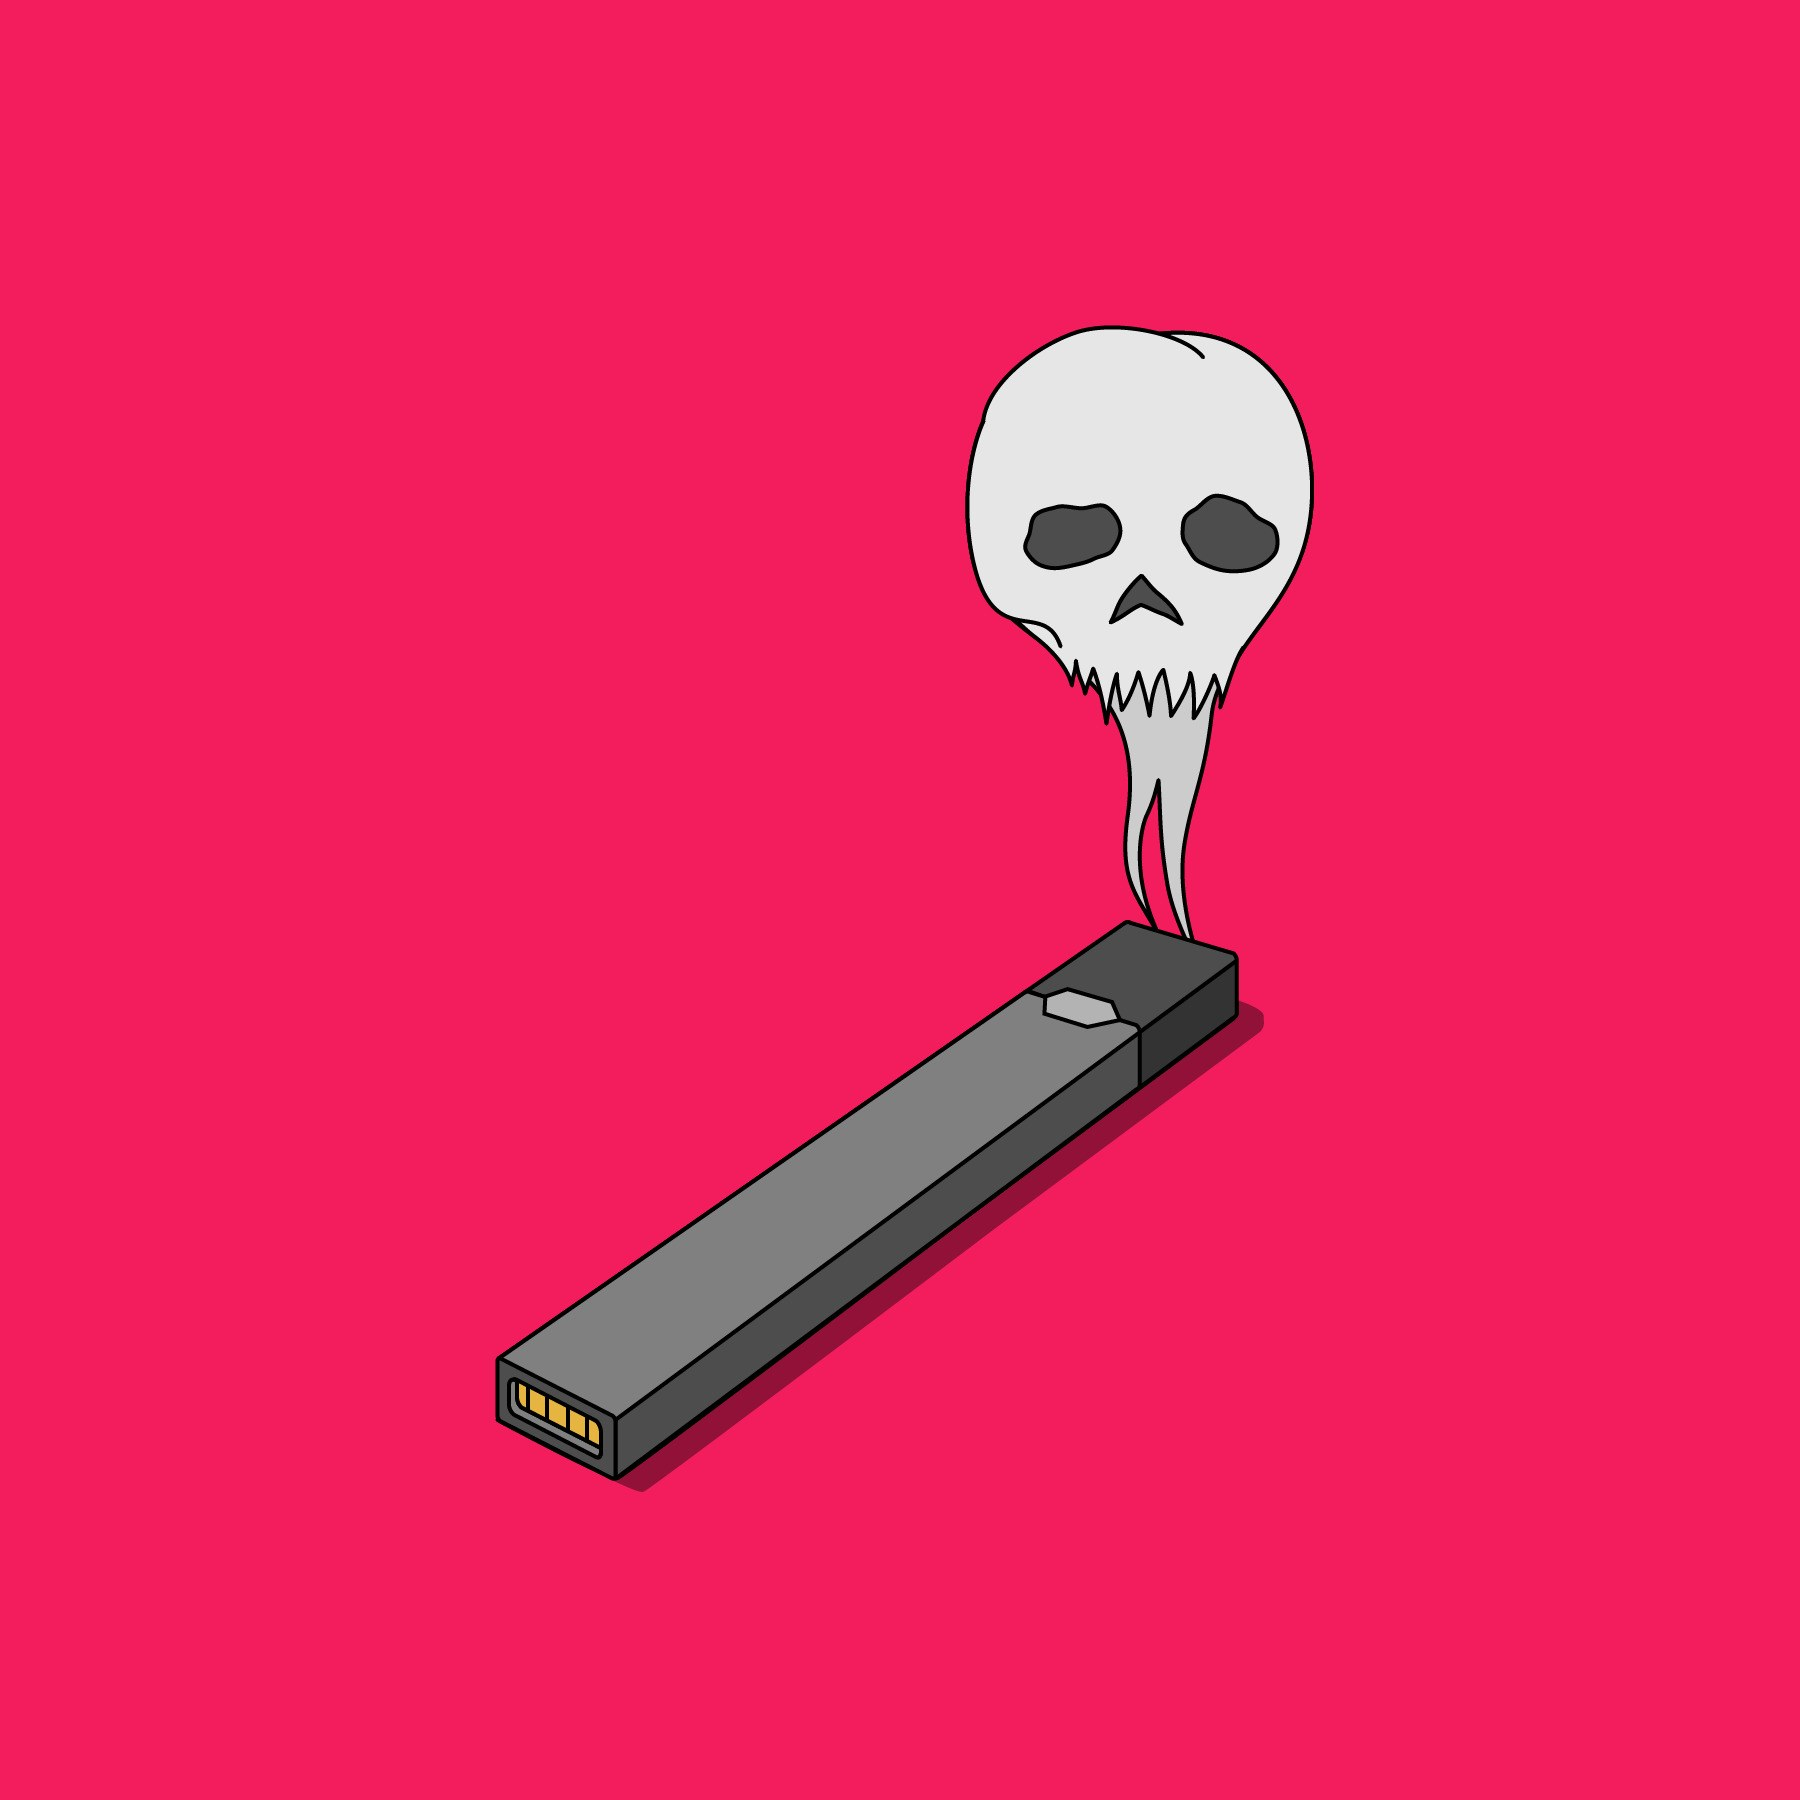 Users Sue Juul for Addicting Them to Nicotine.